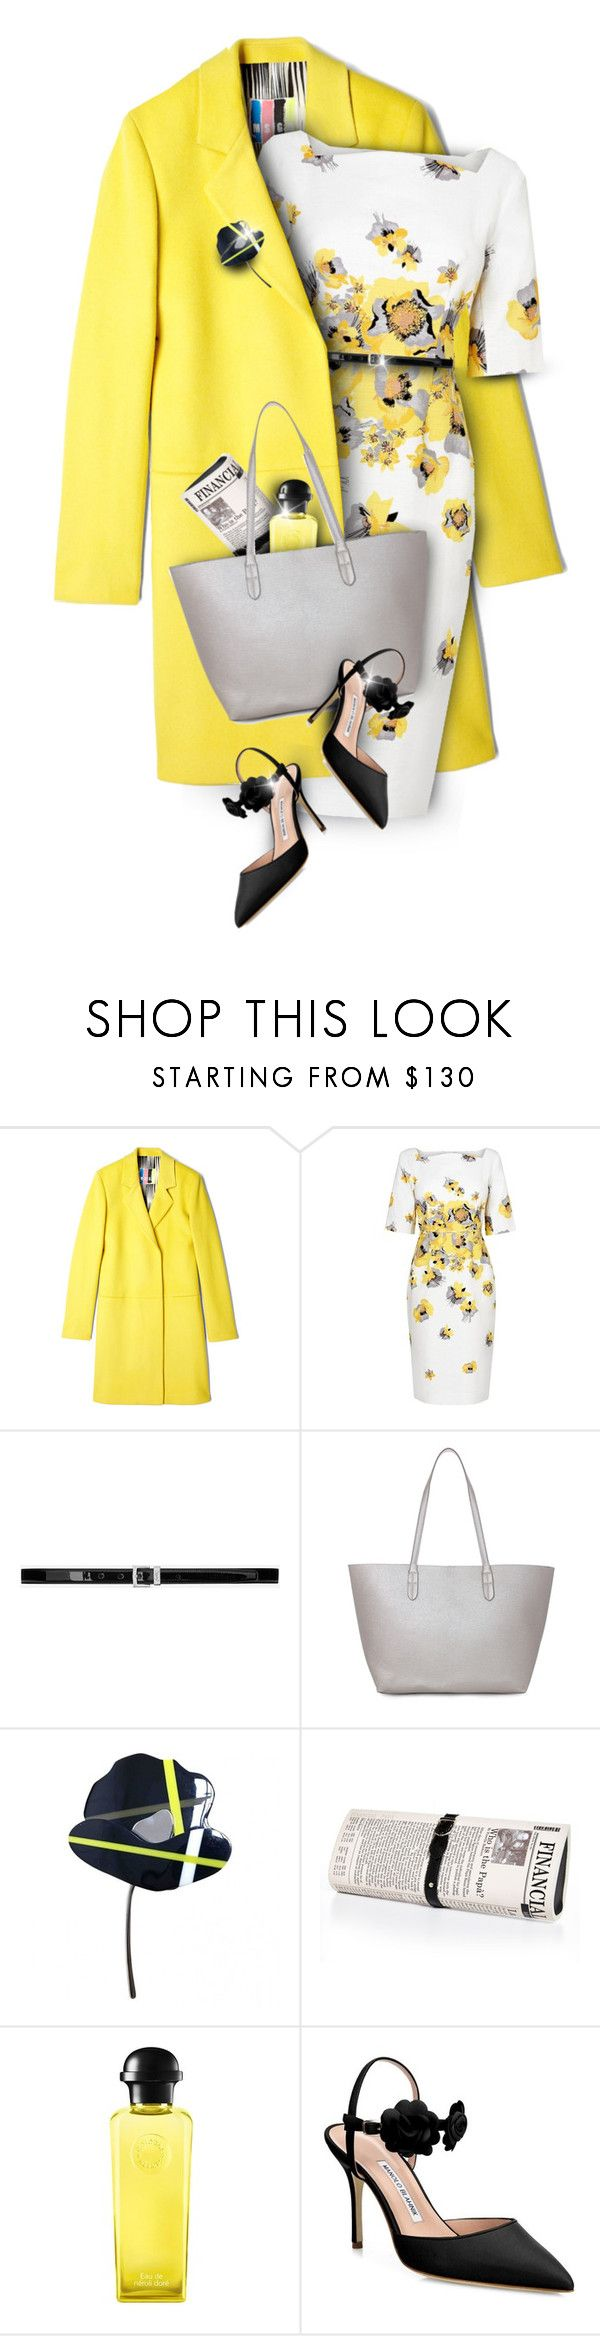 """""""Floral yellow"""" by kseniz13 ❤ liked on Polyvore featuring MSGM, L.K.Bennett, Yves Saint Laurent, Marni, Papà Razzi, Hermès, Manolo Blahnik, outfit, yellow and floral"""